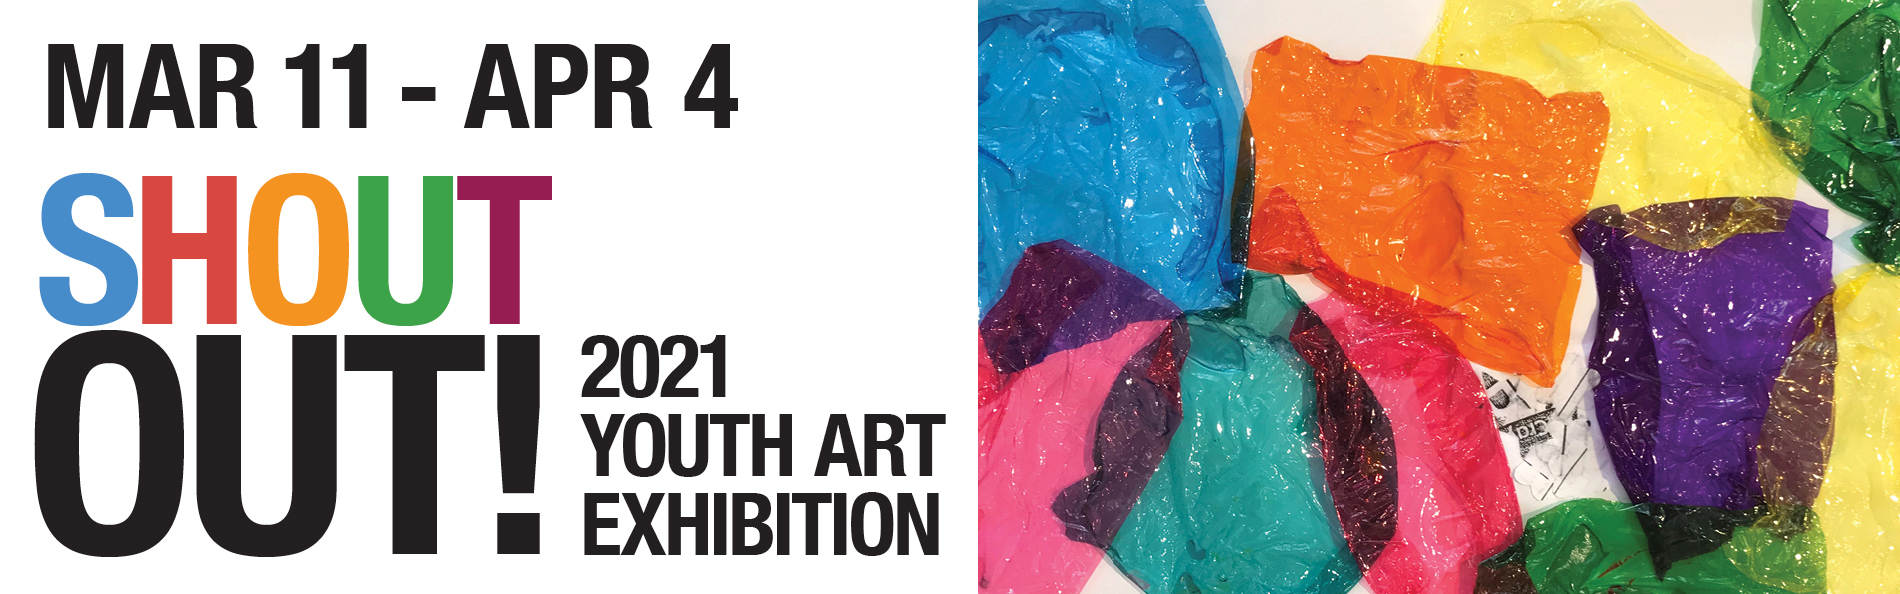 Shout Out! Youth Art Exhibition